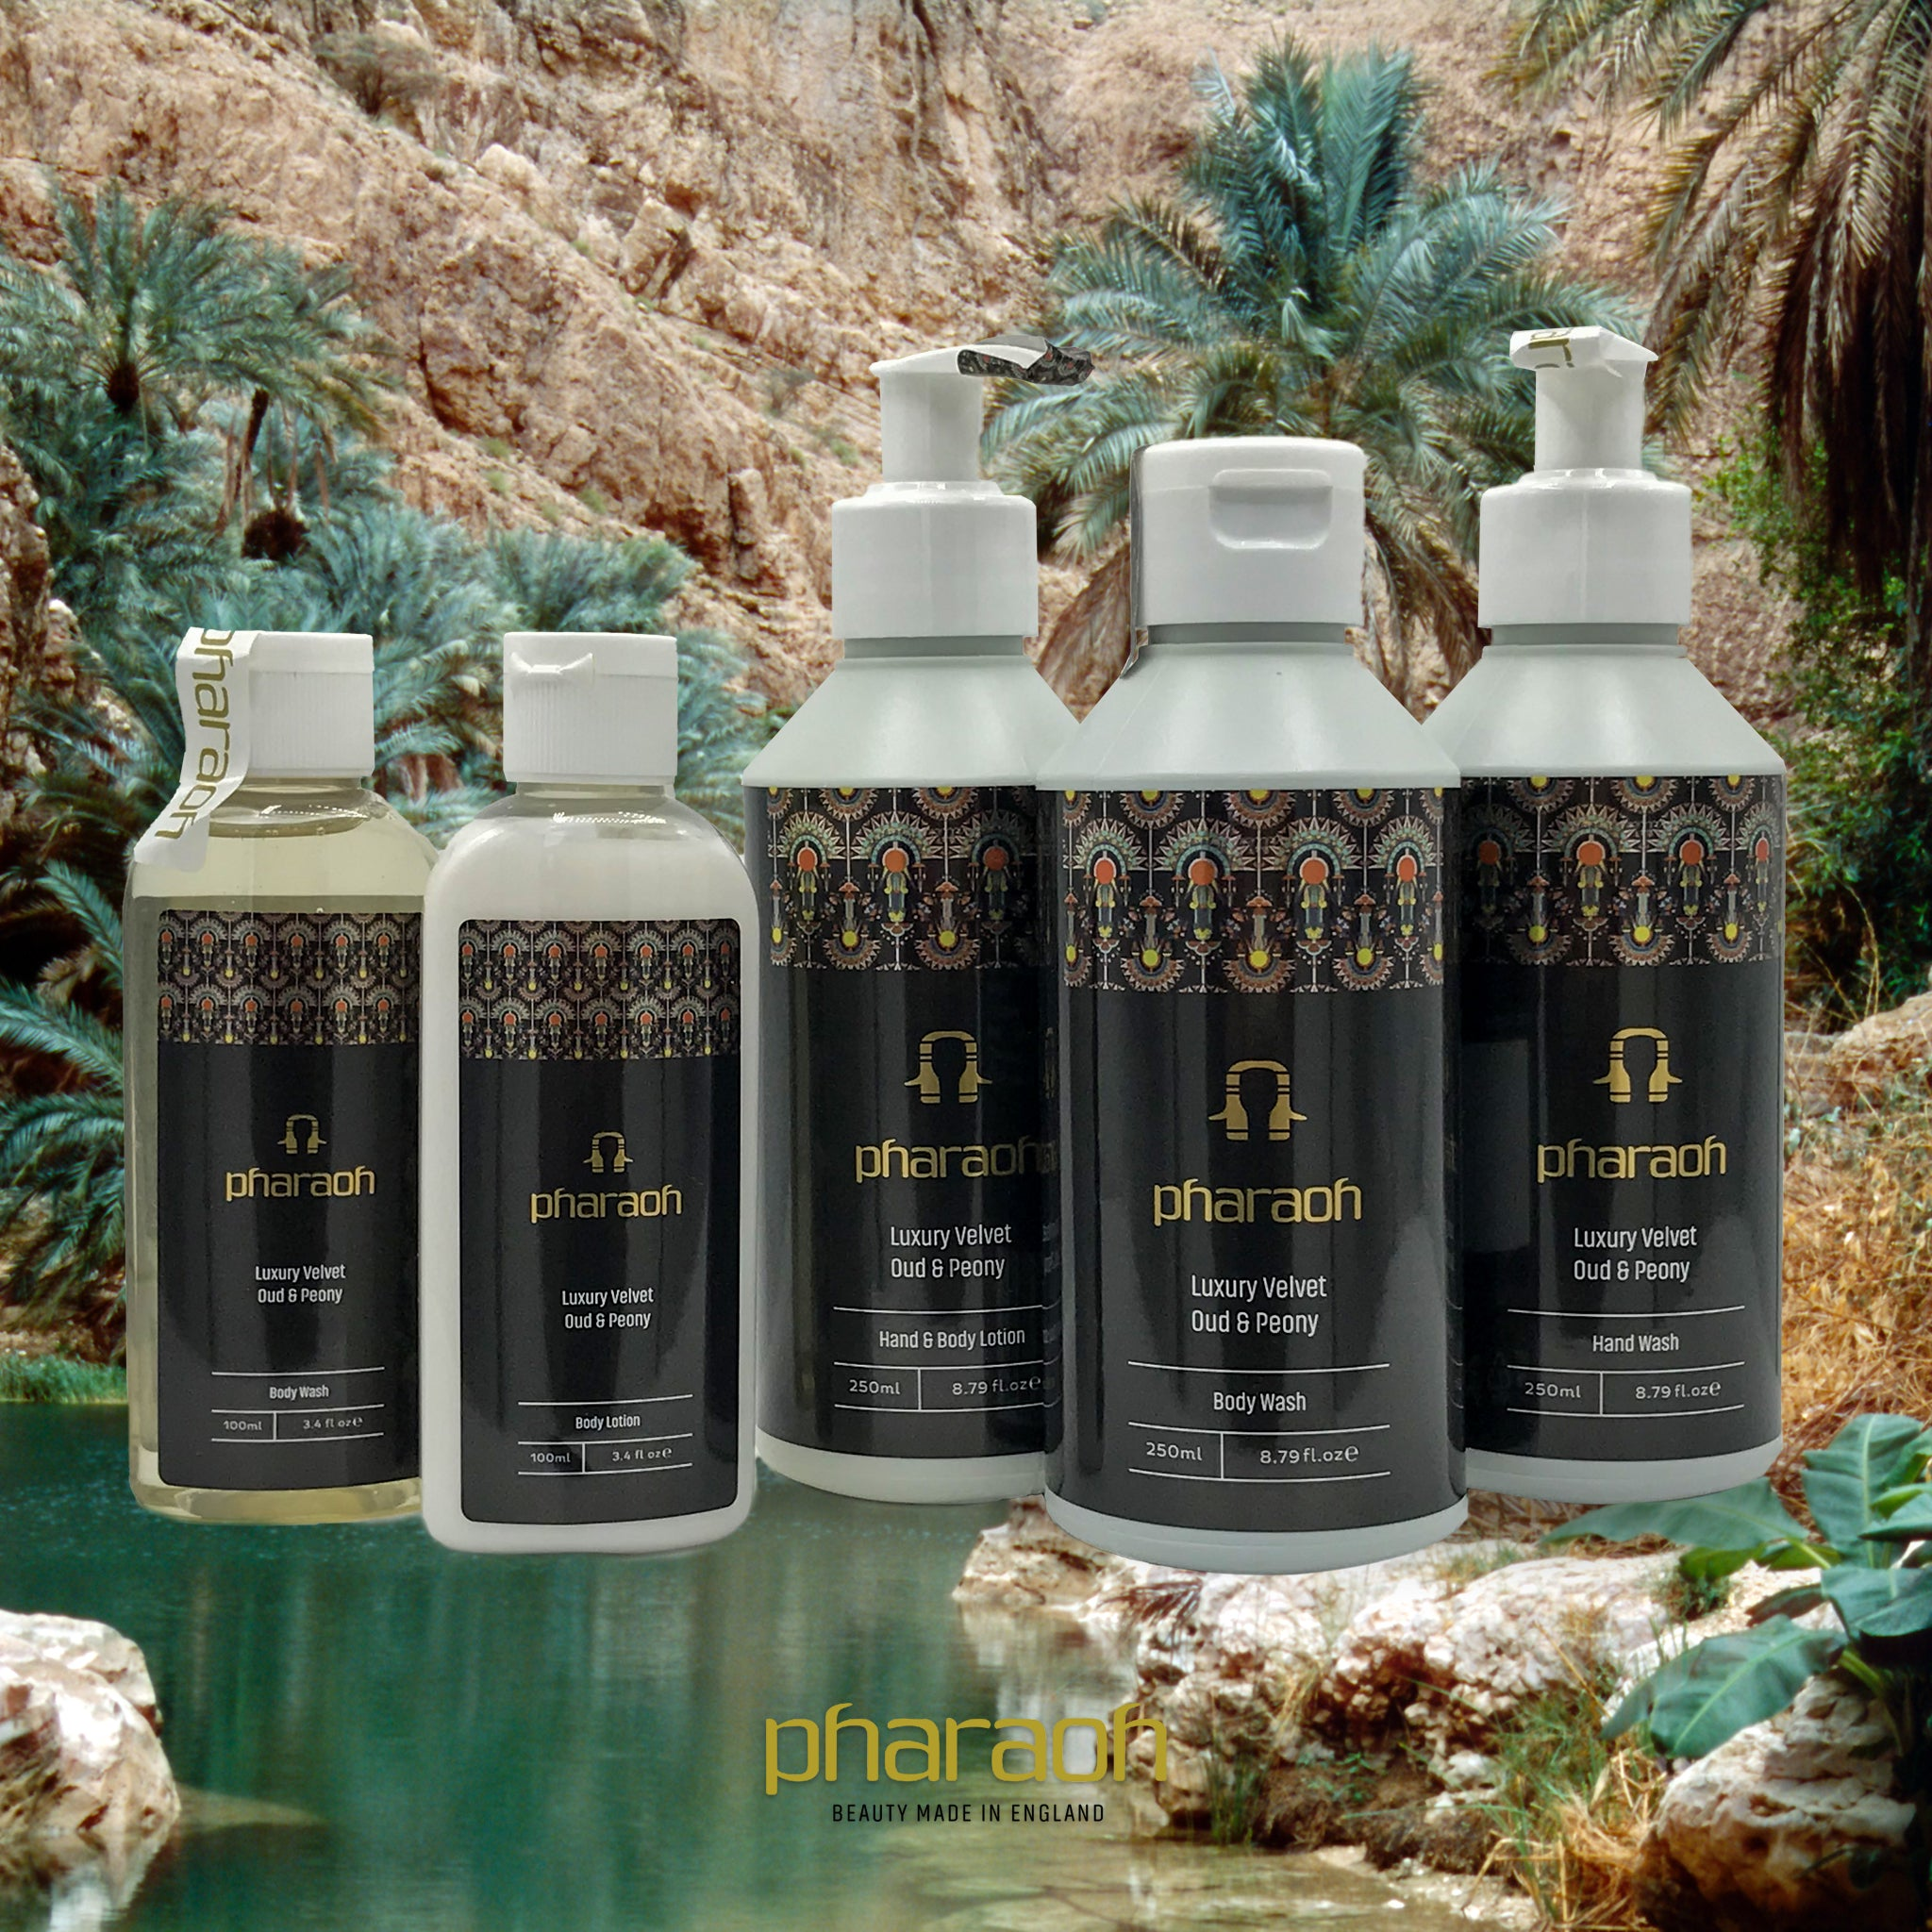 Pharaoh's Luxury Oud & Peony Bath & Body Collection | Pharaoh London Cosmetics UK